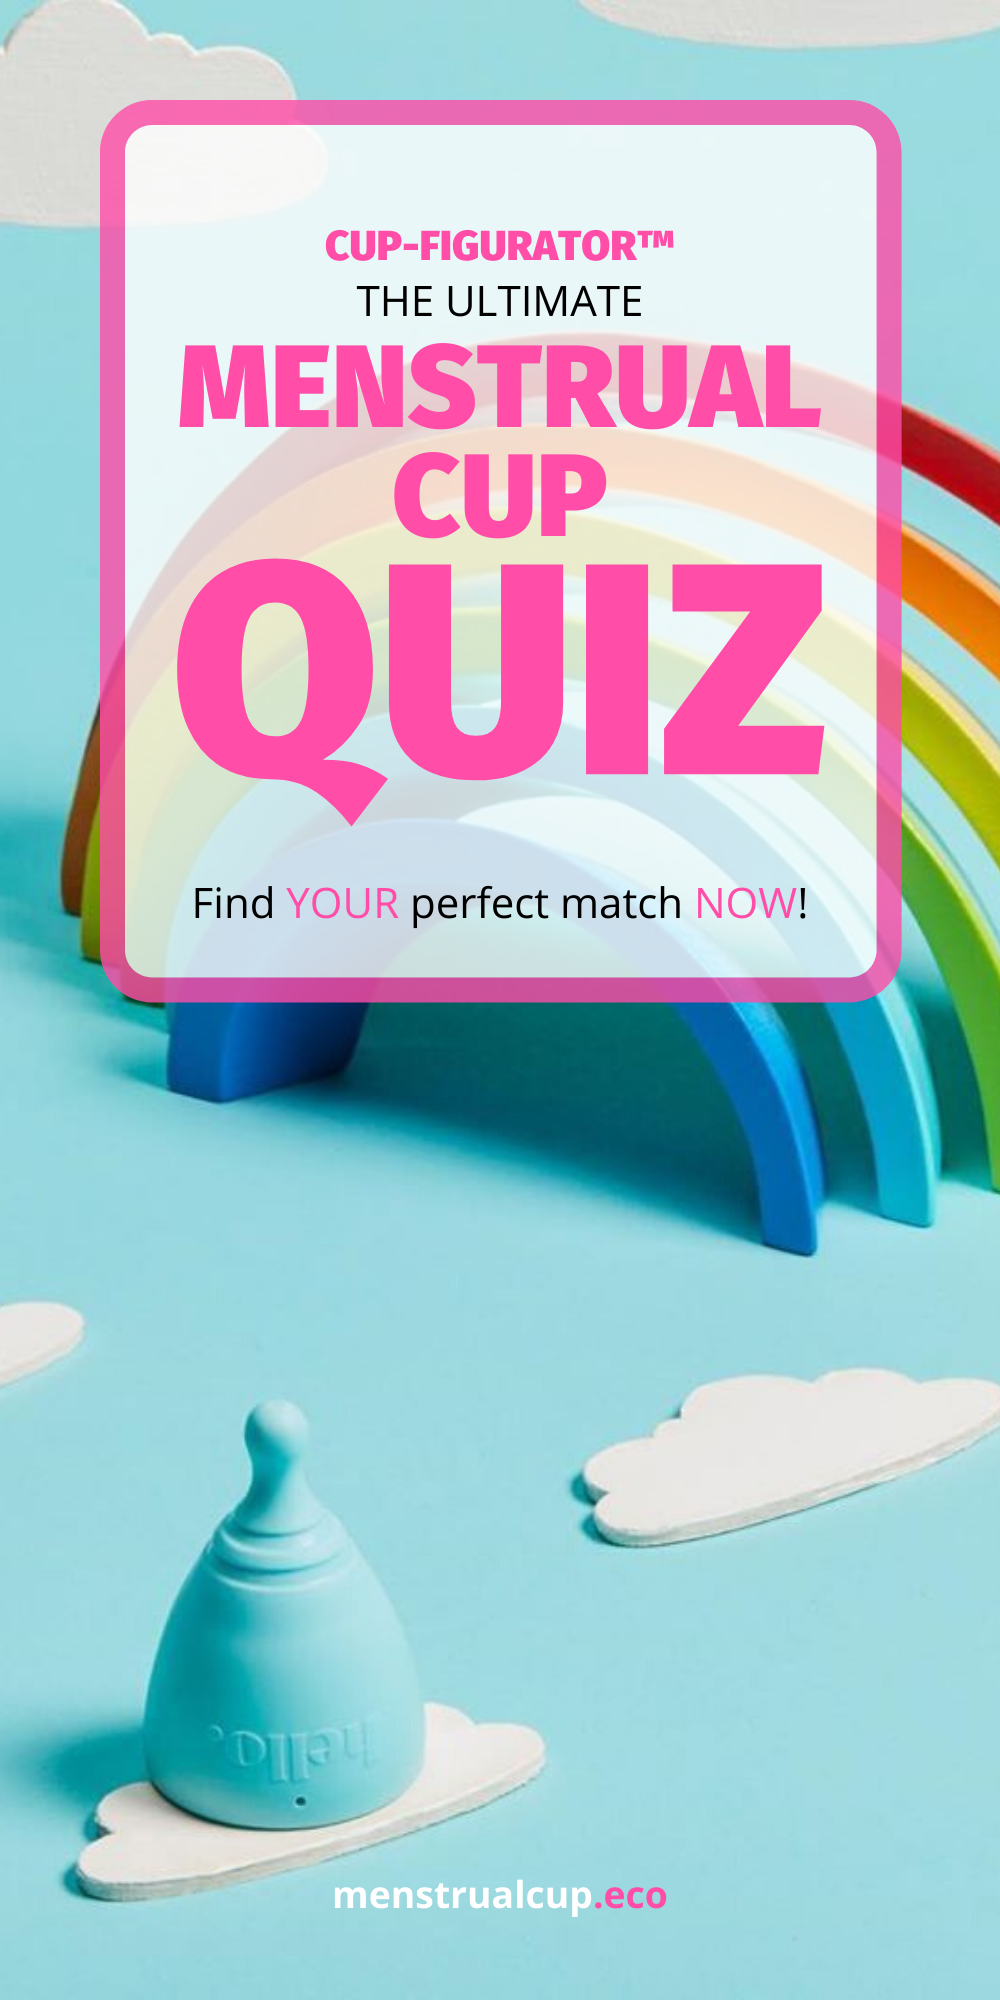 Menstrual Cup Quiz In 2020 Menstrual Cup Menstrual Menstral Cup